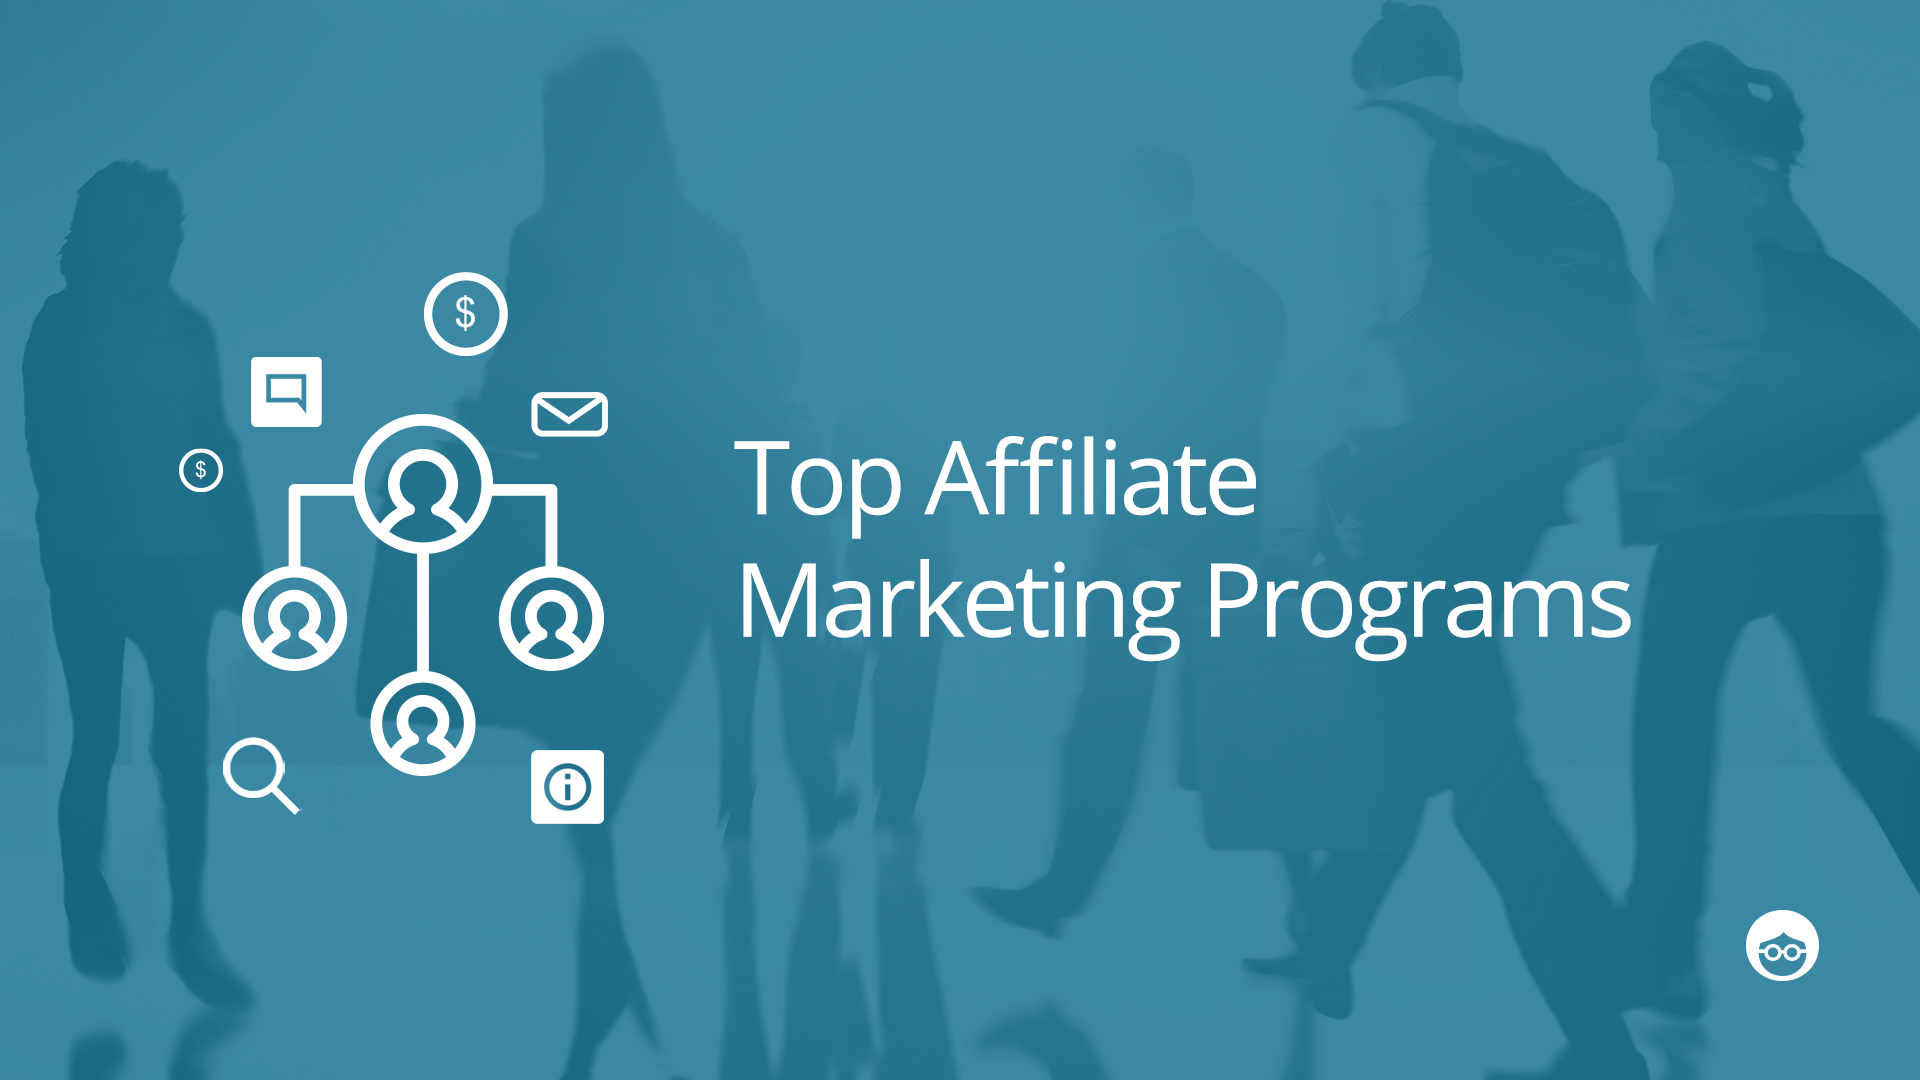 Best Affiliate Programs 2019 7 Best Affiliate Programs for 2019 | Outbrain Blog